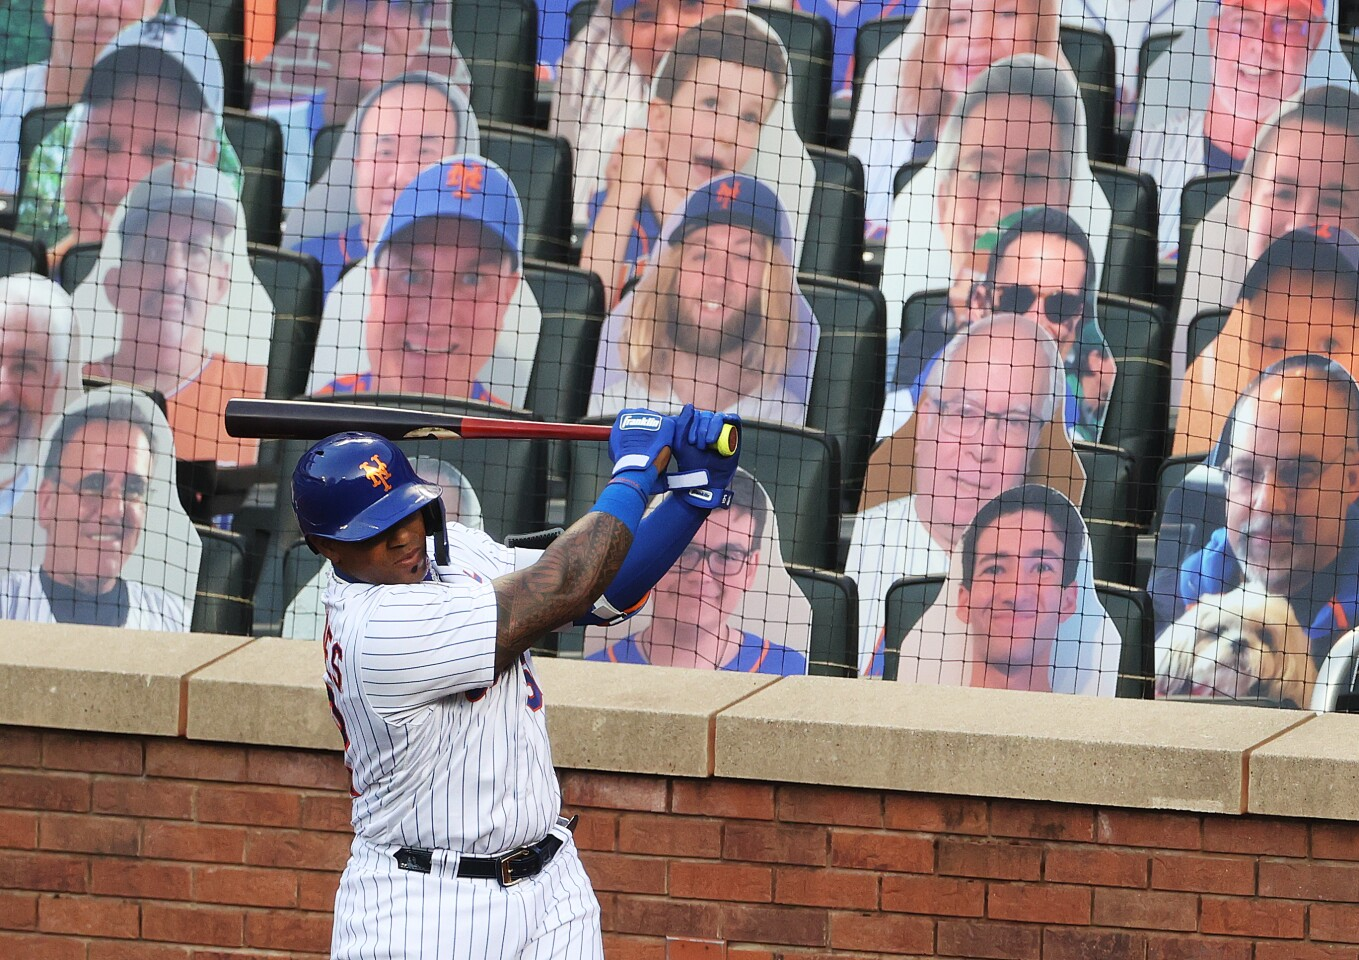 NEW YORK, NEW YORK - JULY 18: Yoenis Cespedes #52 of the New York Mets stands in the on deck circle in front of cardboard fans during their Pre Season game at Citi Field on July 18, 2020 in New York City. (Photo by Al Bello/Getty Images)